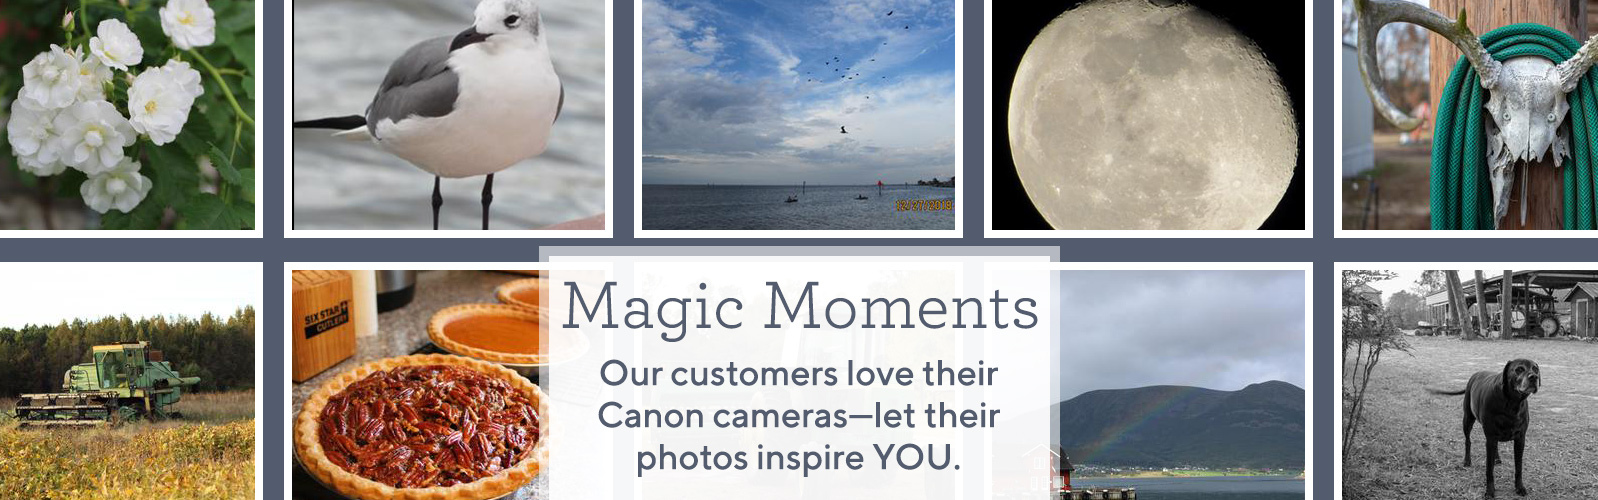 Magic Moments.  Our customers love their Canon cameras—let their photos inspire YOU.